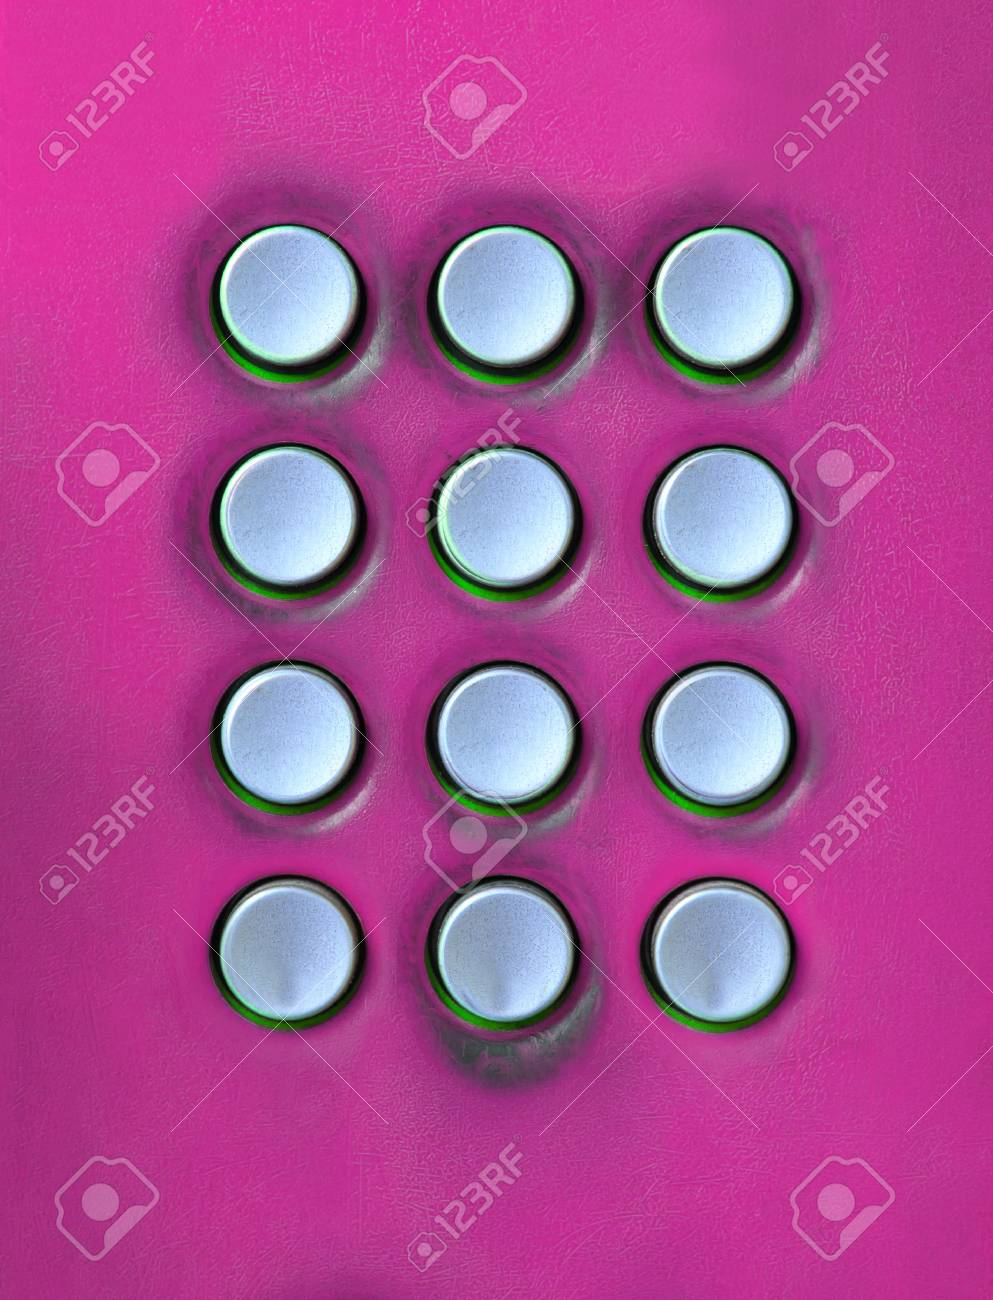 key board of number press button on public telephone free space for use as multipurpose on colorful texture Stock Photo - 15119718